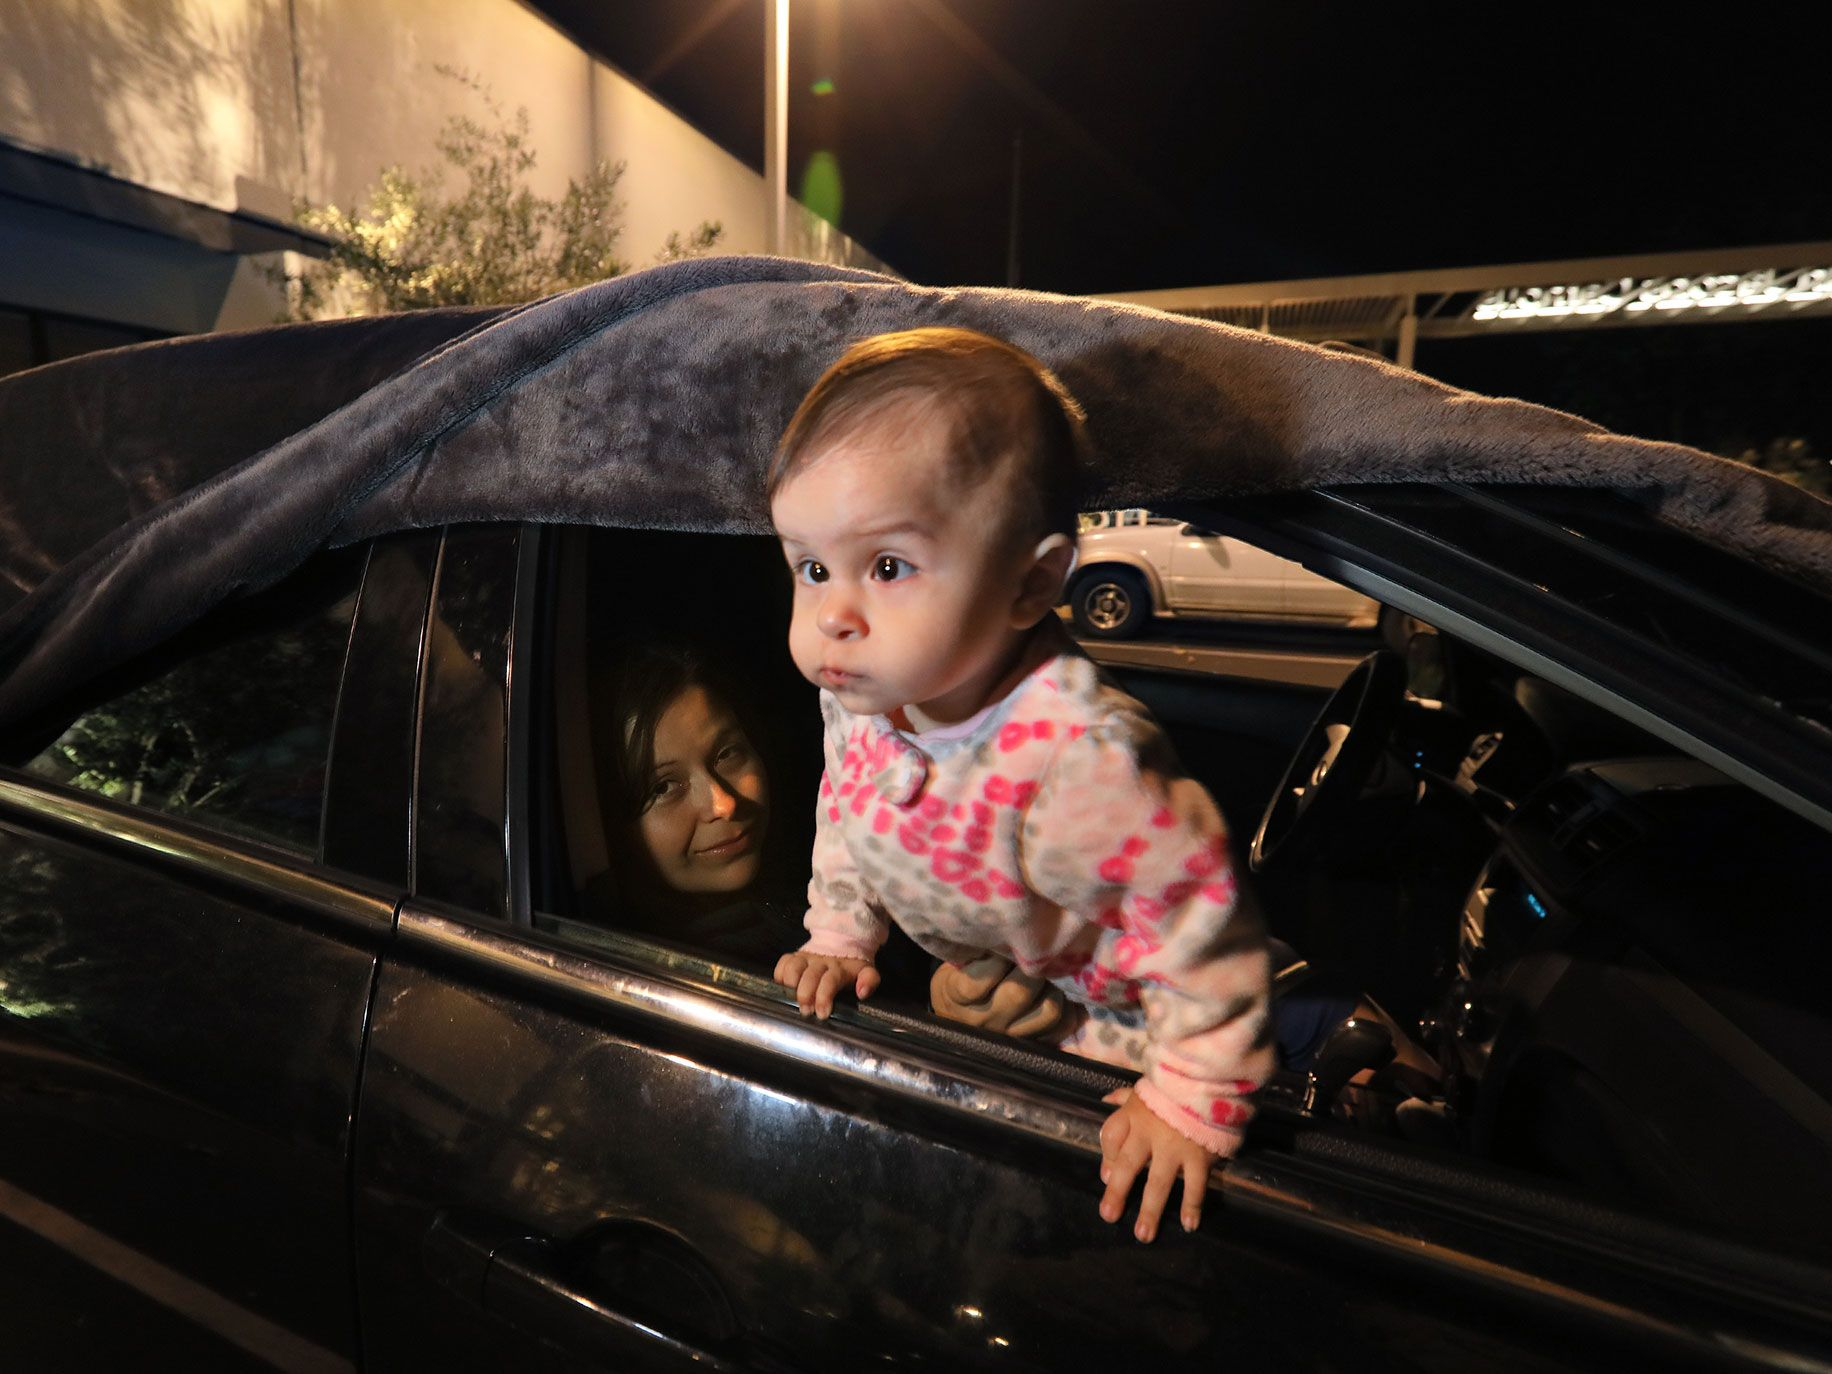 Selena Rivera, held by mom Bertha, looks out the window before Bertha and husband Manuel cover it with the blanket above to spend the night here. Manual has to work in the morning at his security guard job, and the family sleeps in their car in the parking lot of Jewish Family Service of San Diego.